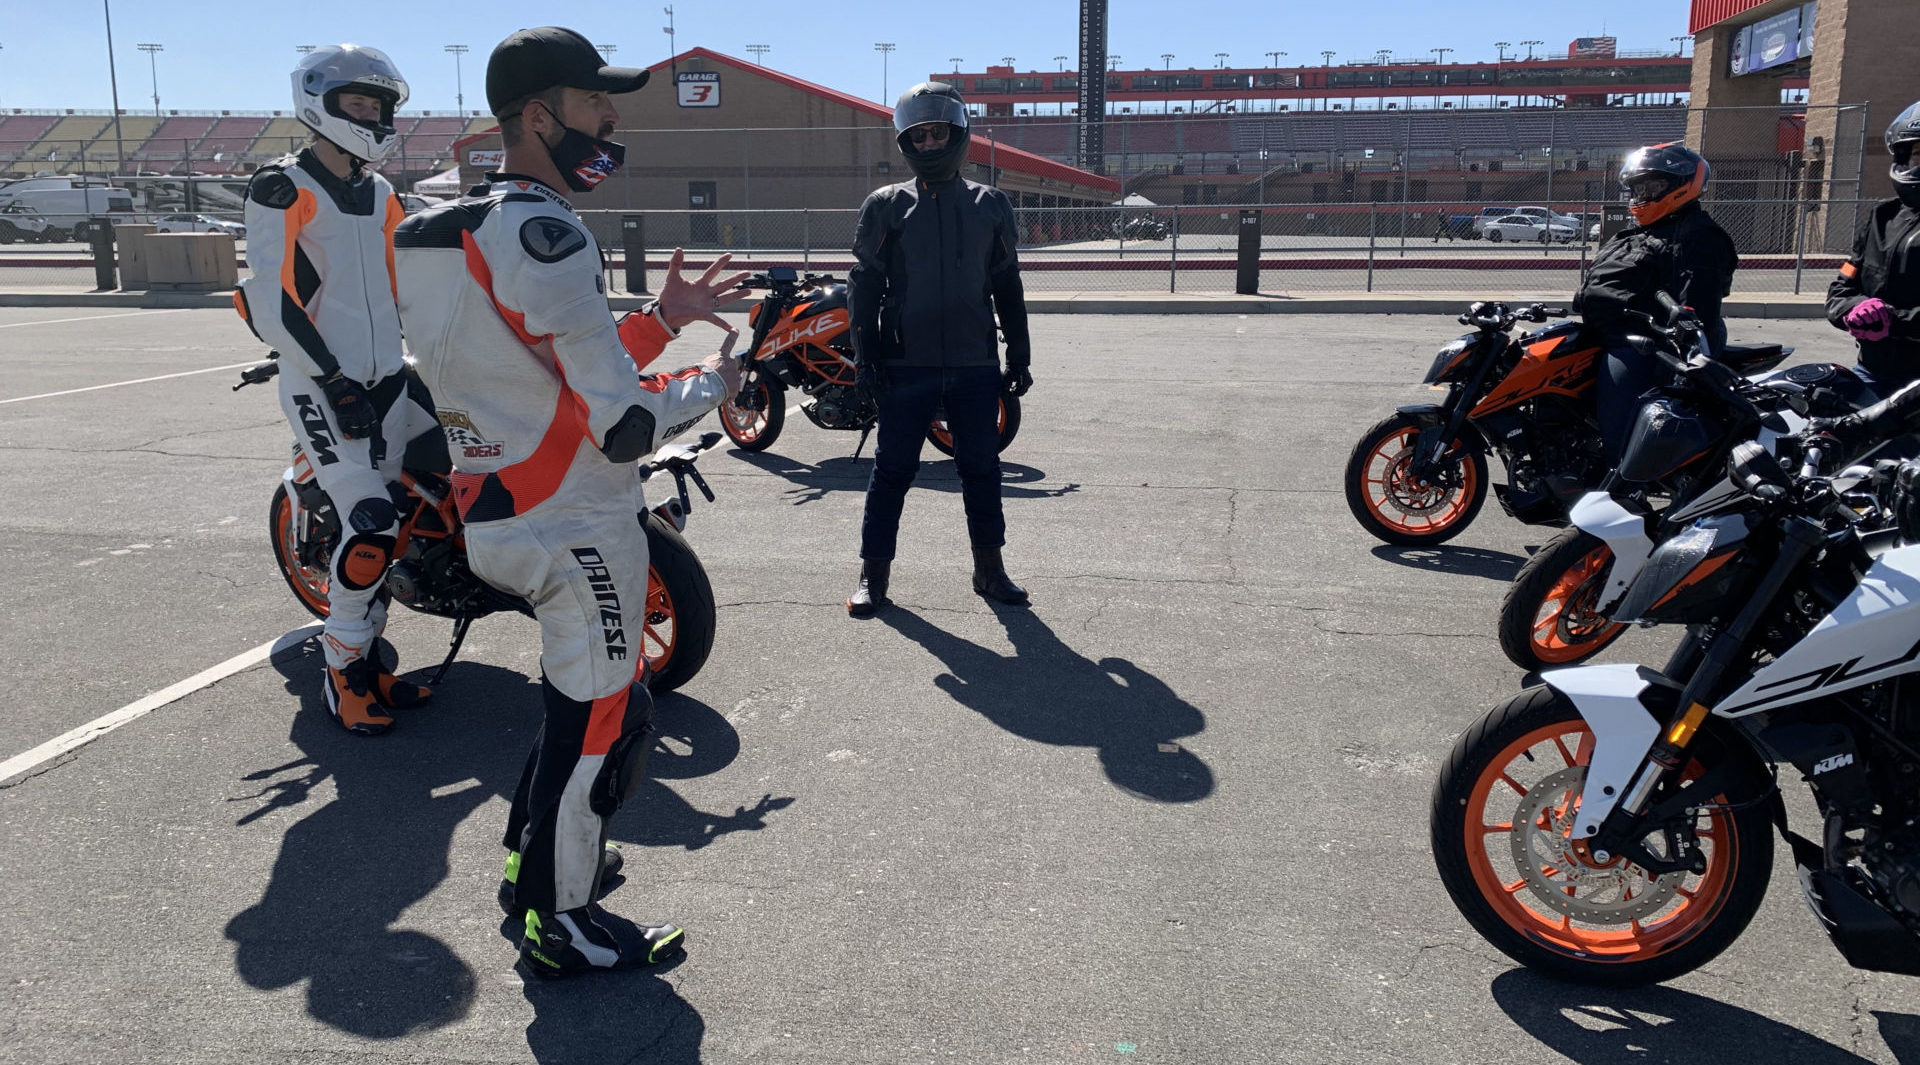 Coaches with riders on KTM motorcycles. Photo courtesy USMCA.